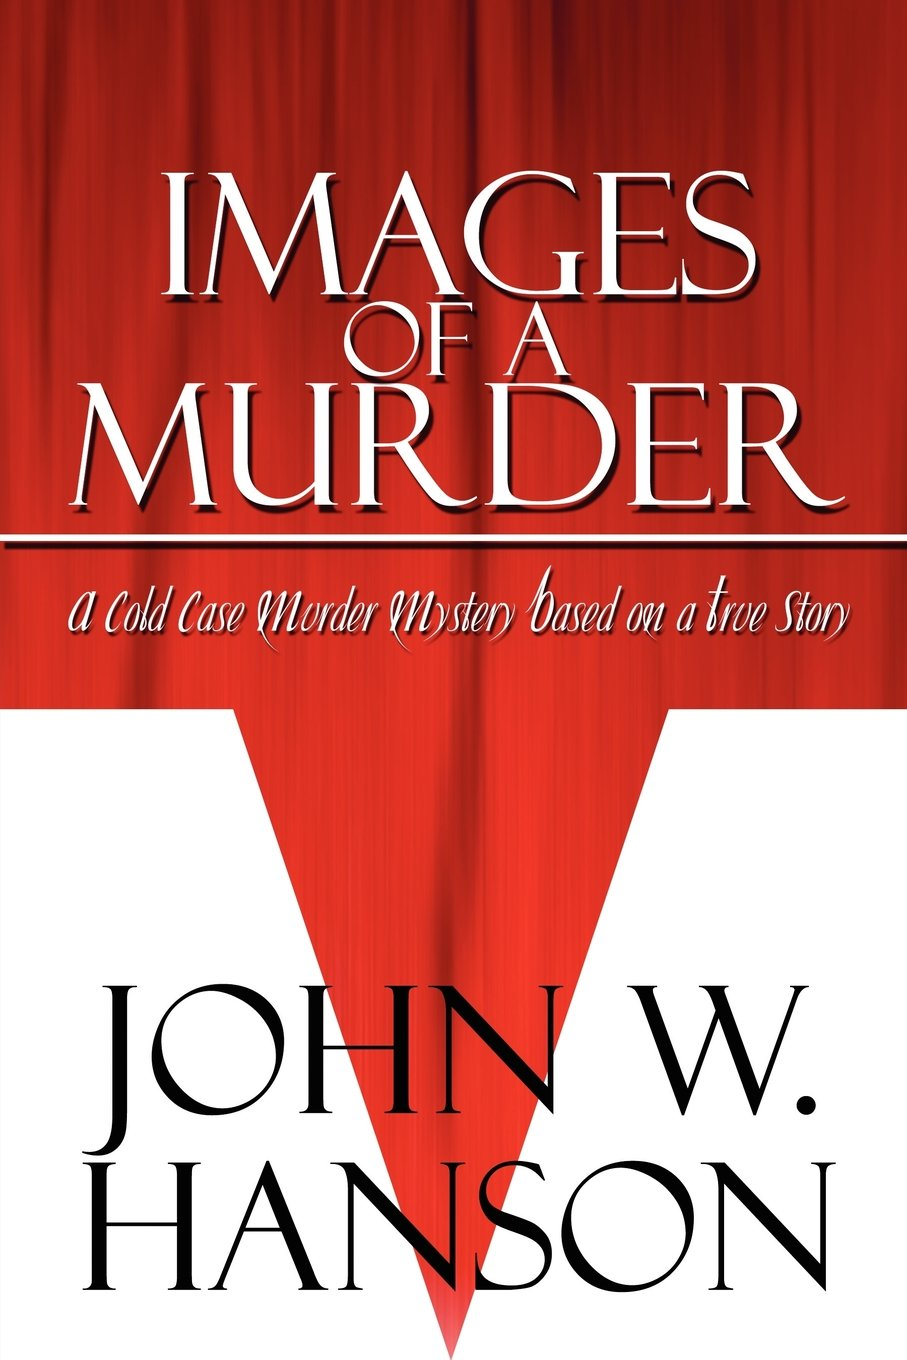 Download Images of a Murder: A Cold Case Murder Mystery Based on a True Story PDF